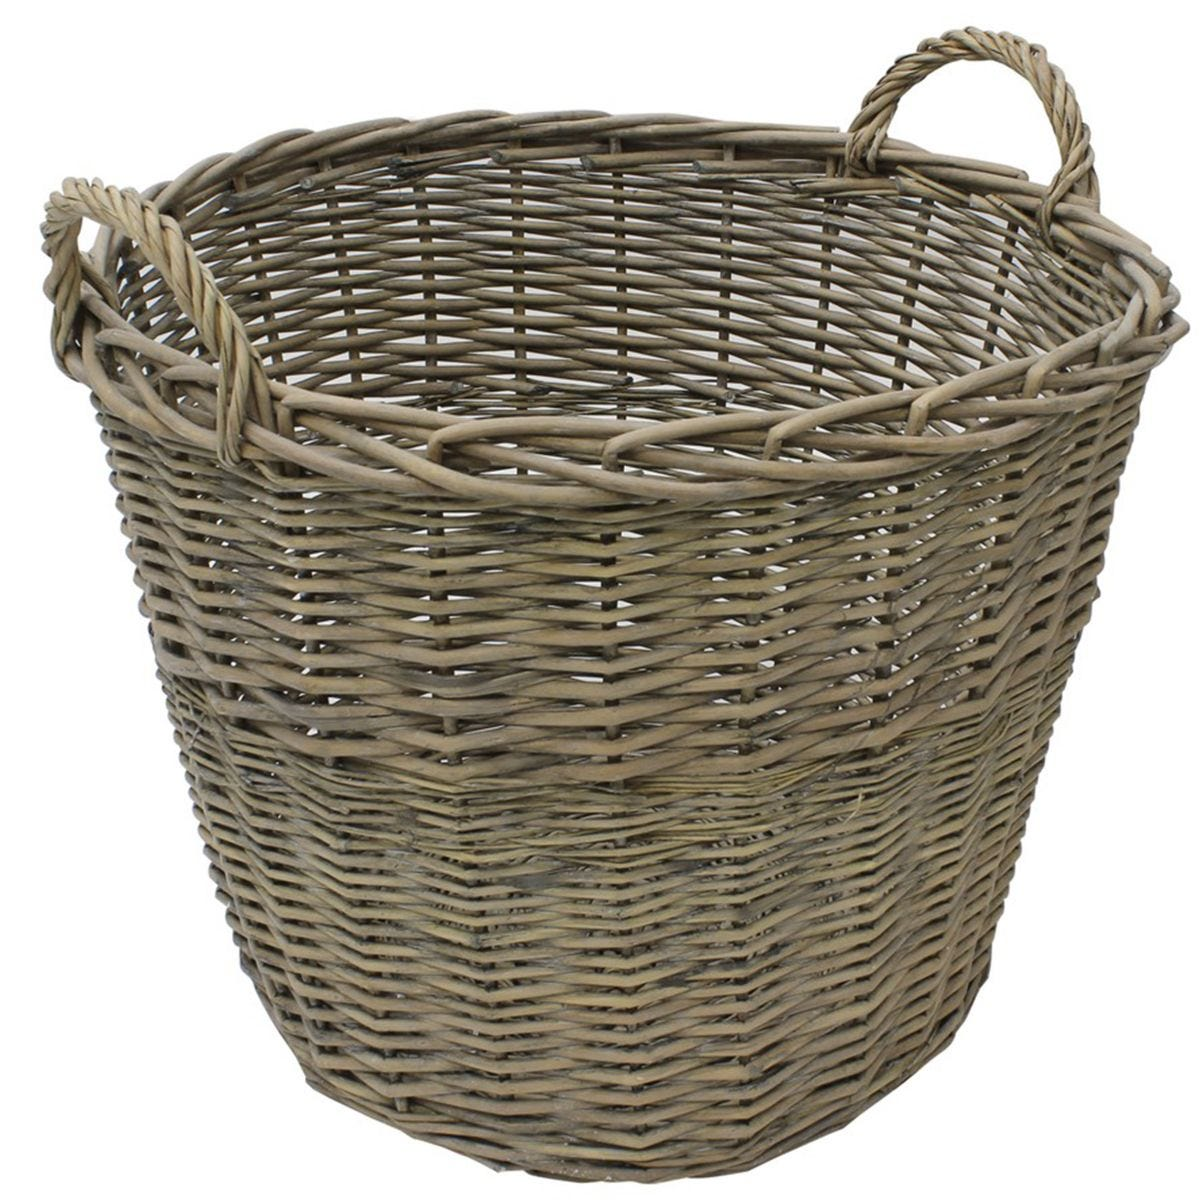 JVL Chunky Willow Round Laundry Storage Basket with Handles Natural 50 x 50 x H40cm